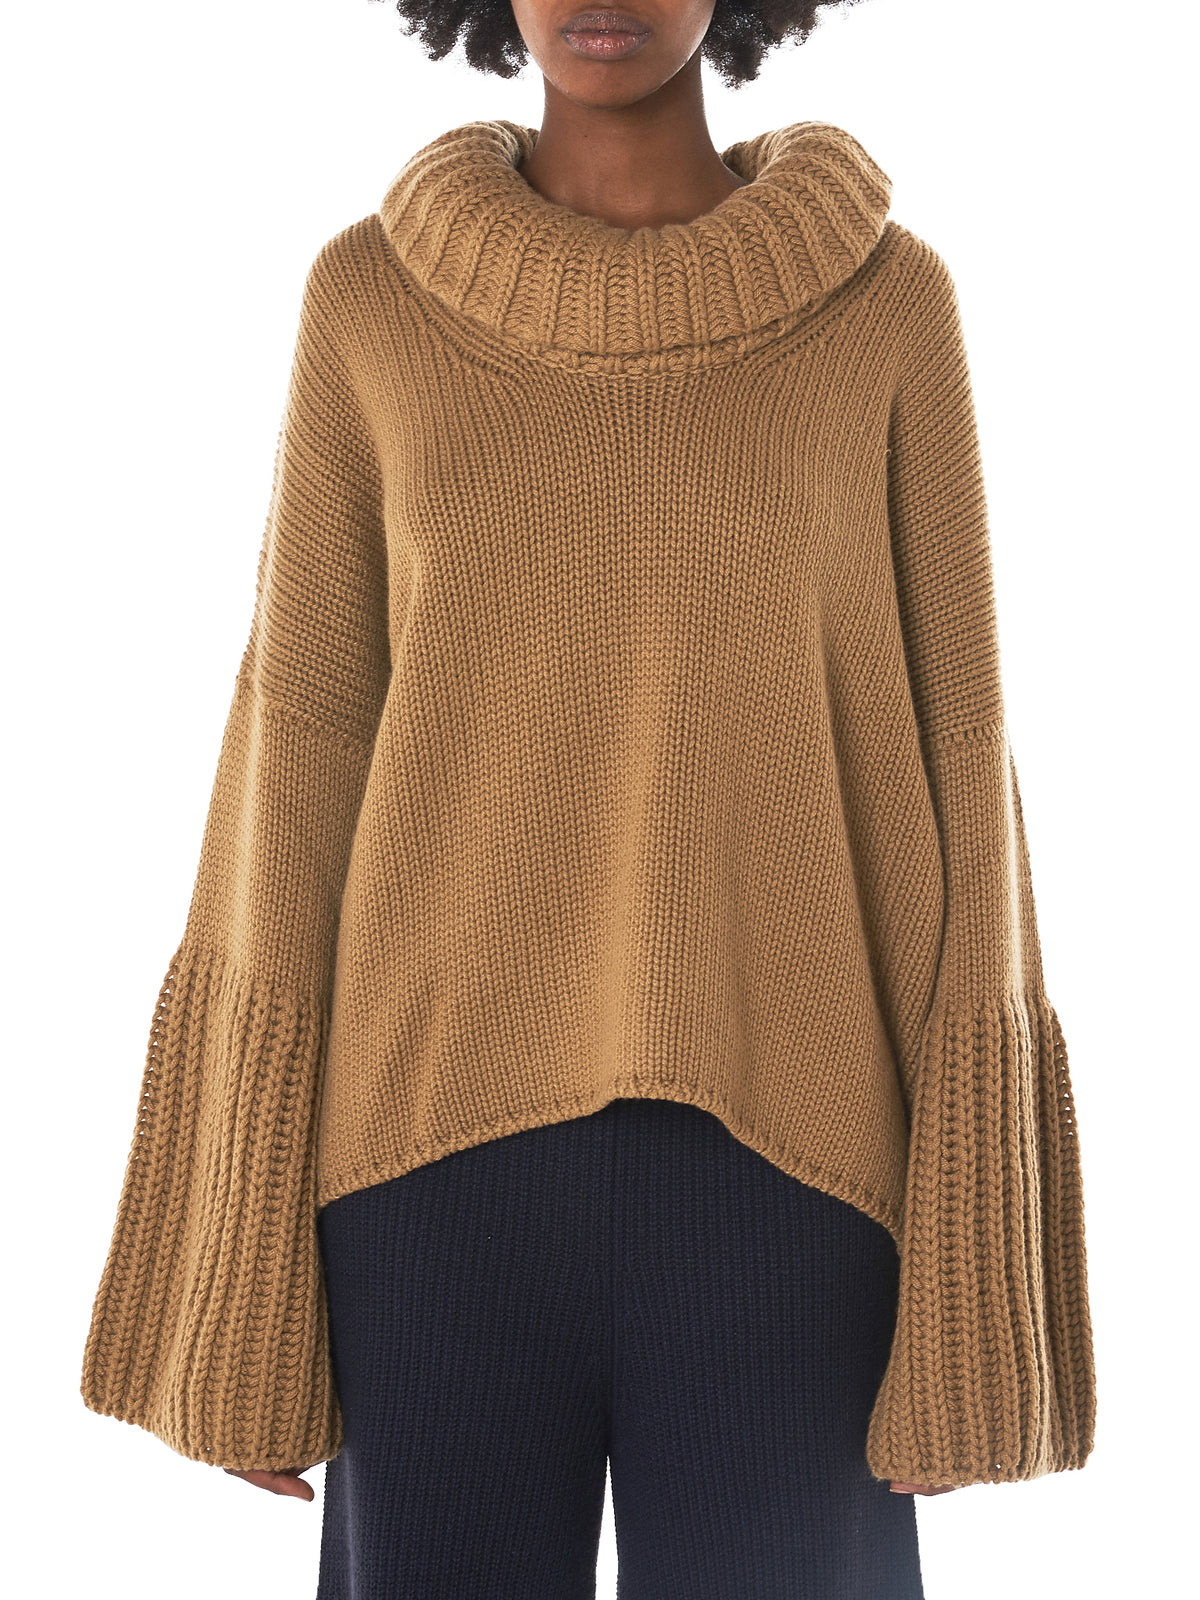 Courcheval Cashmere Turtleneck (AW3KS020-CAMEL)